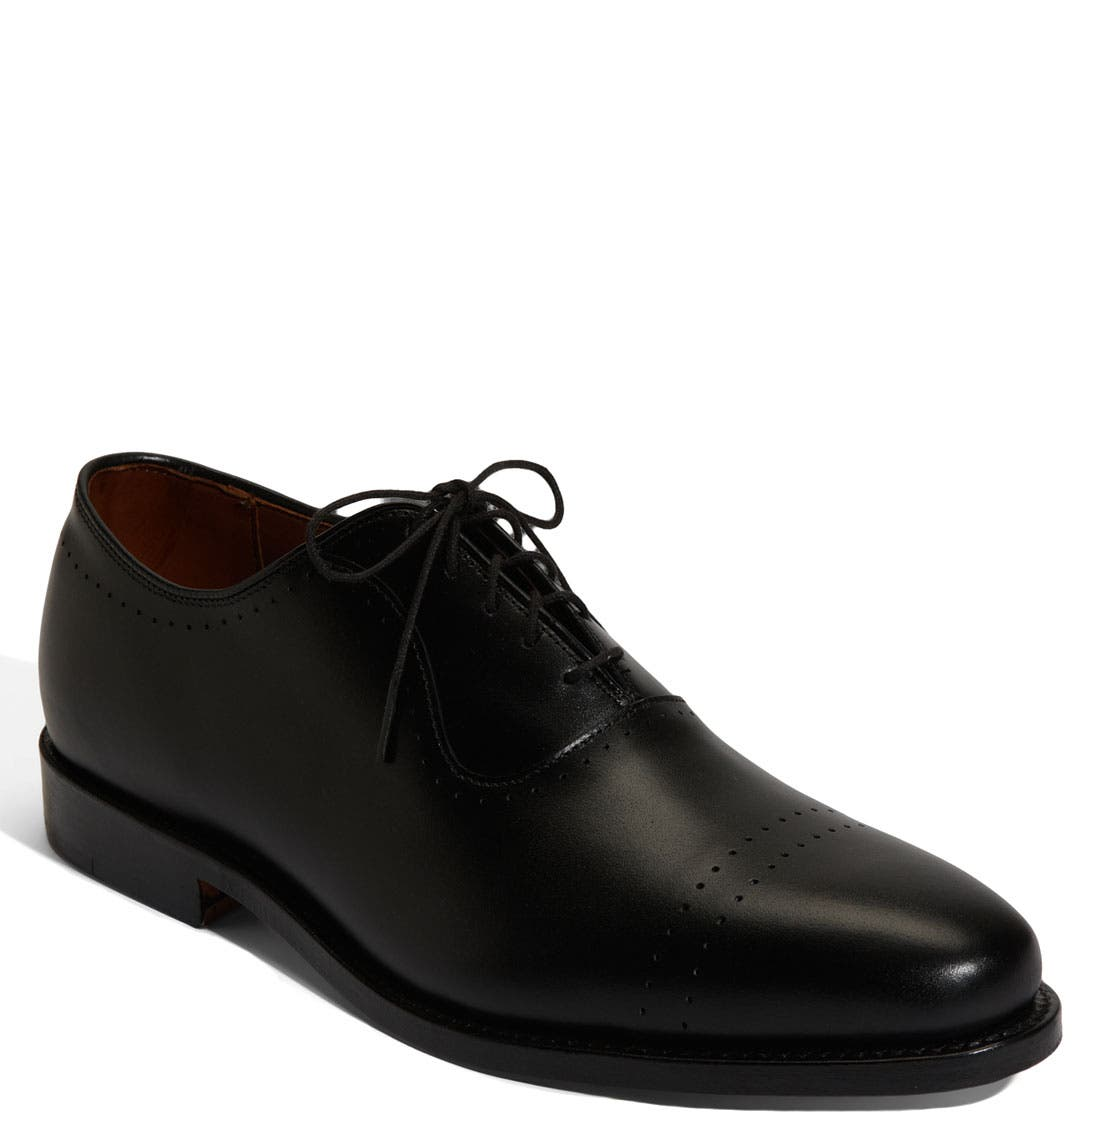 ALLEN EDMONDS 'Vernon' Oxford